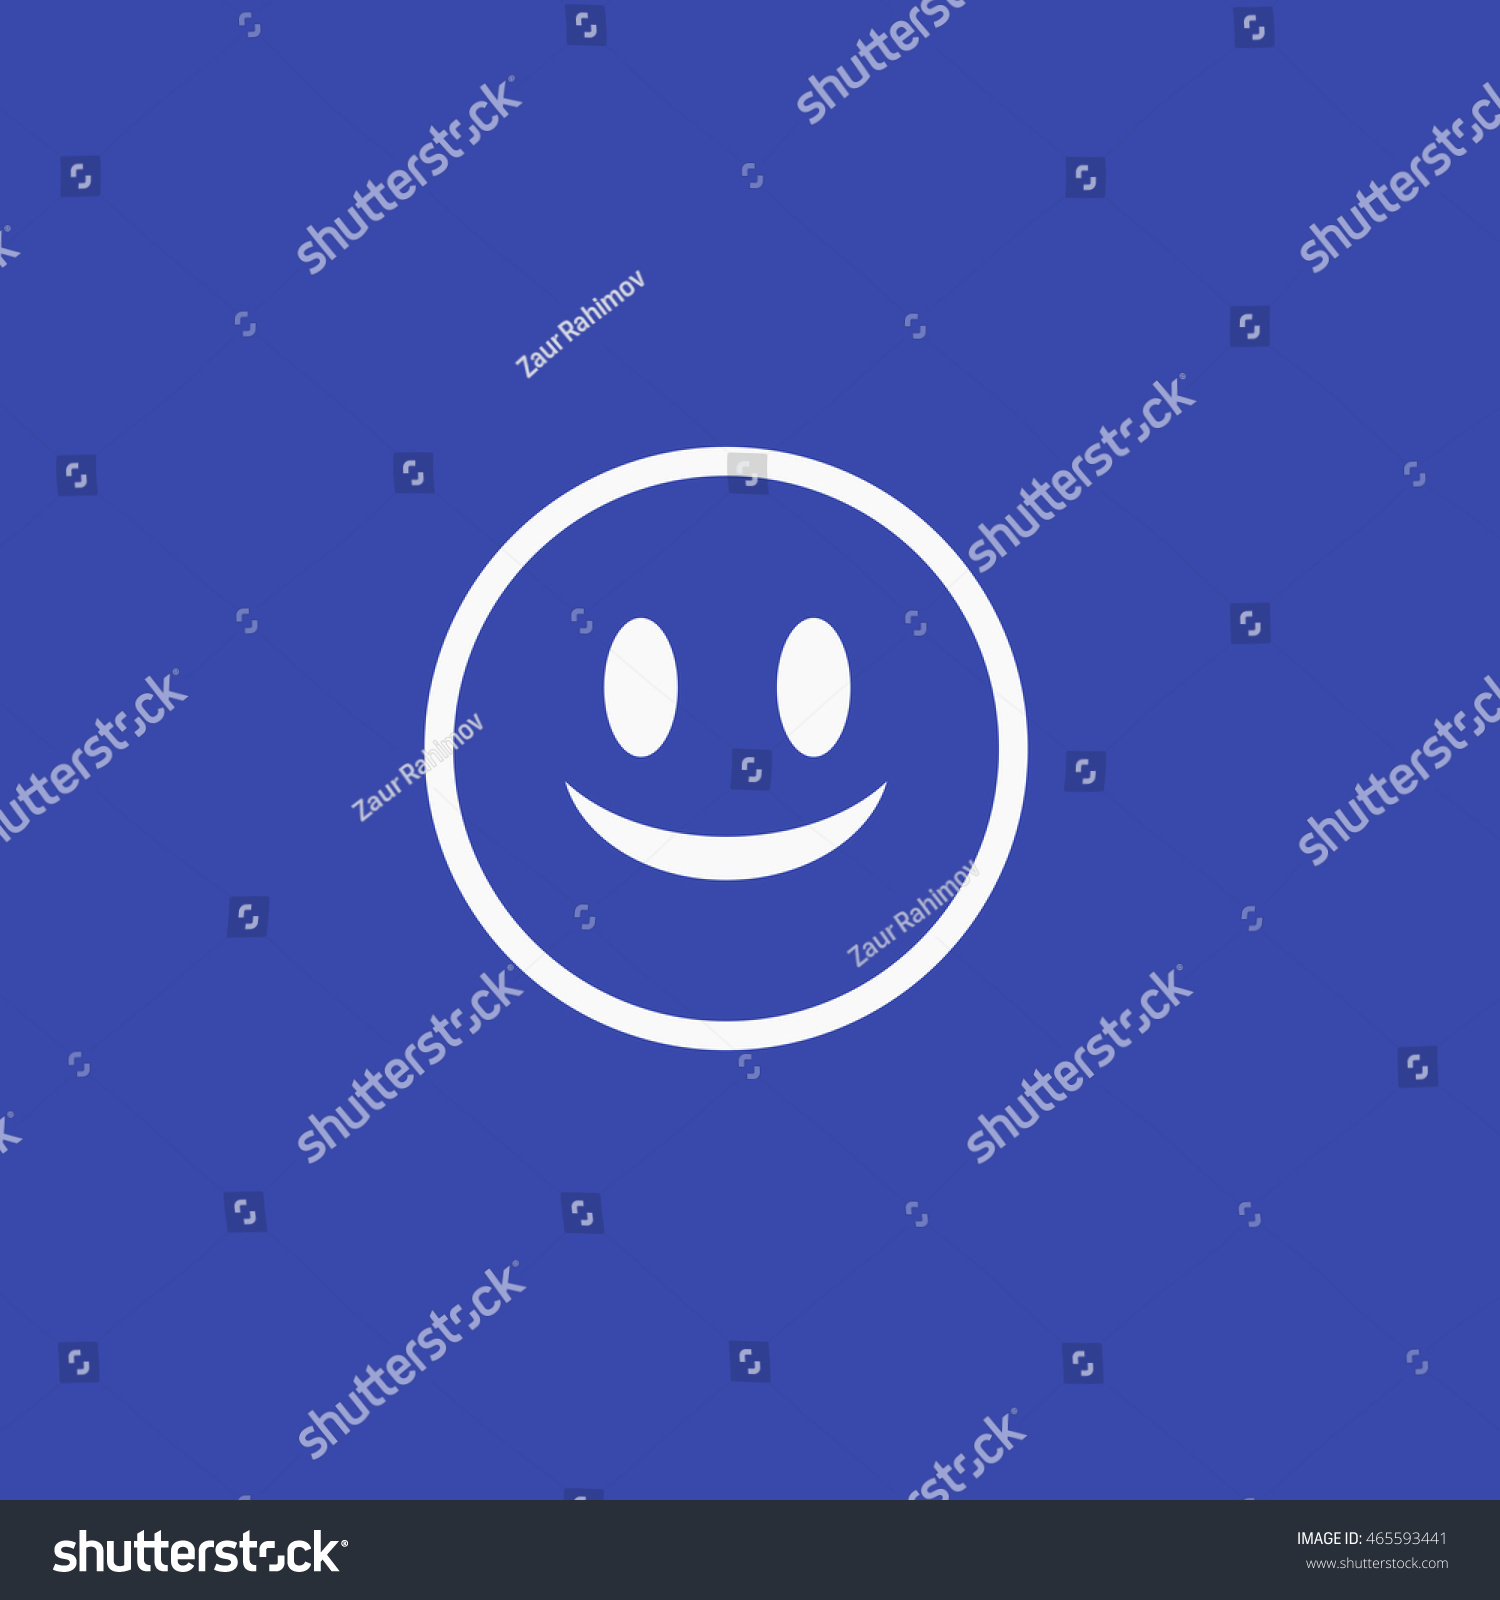 Facebook smile emoji icon vector head stock vector 465593441 facebook smile emoji icon vector head stock vector 465593441 shutterstock buycottarizona